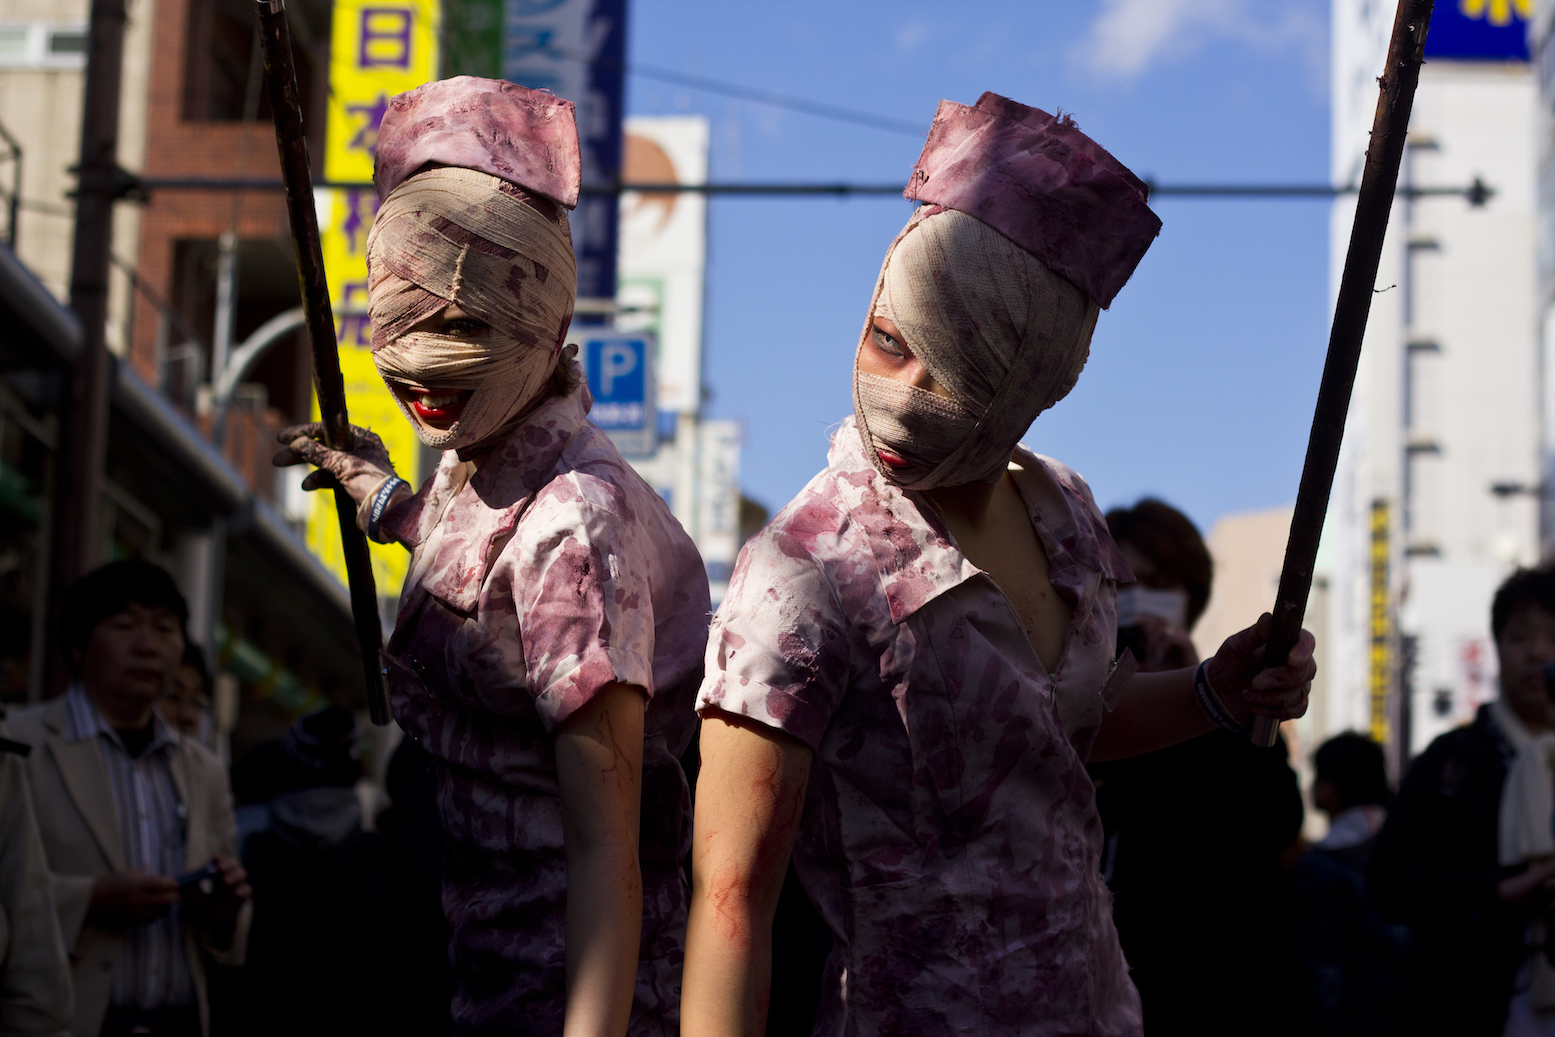 Cosplayers as Silent Hill nurses